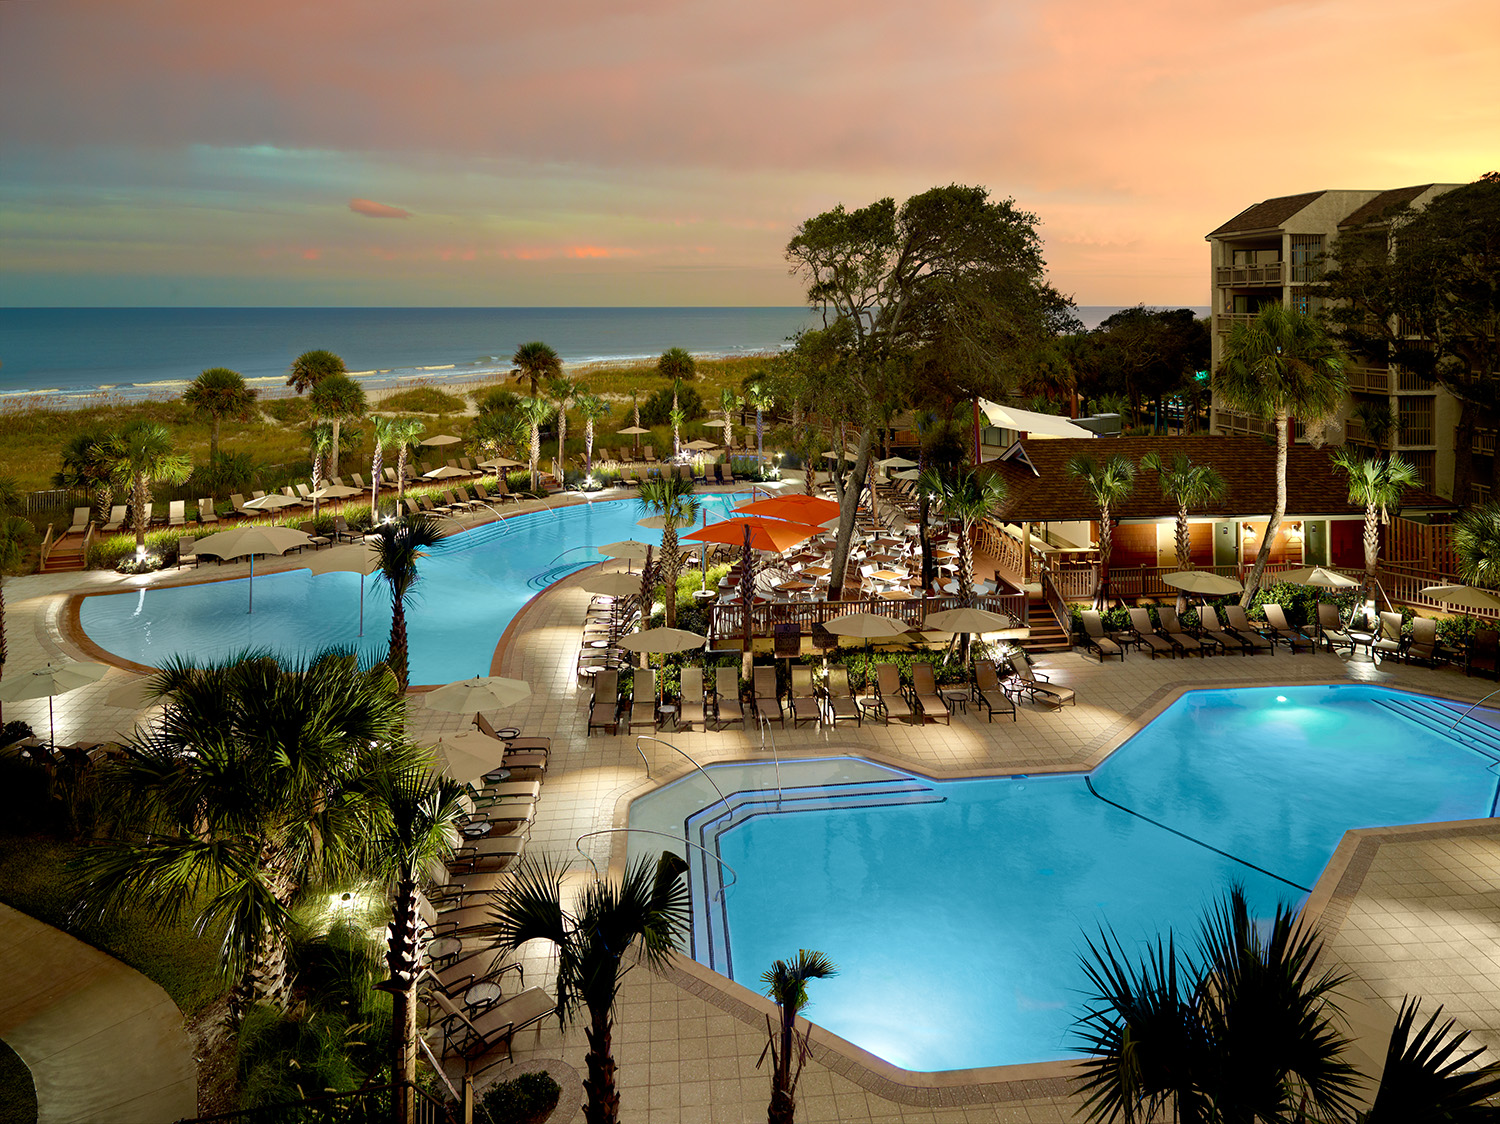 Hilton Head's Omni Resort will host a 14 chef outdoor event on Thursday February 23rd